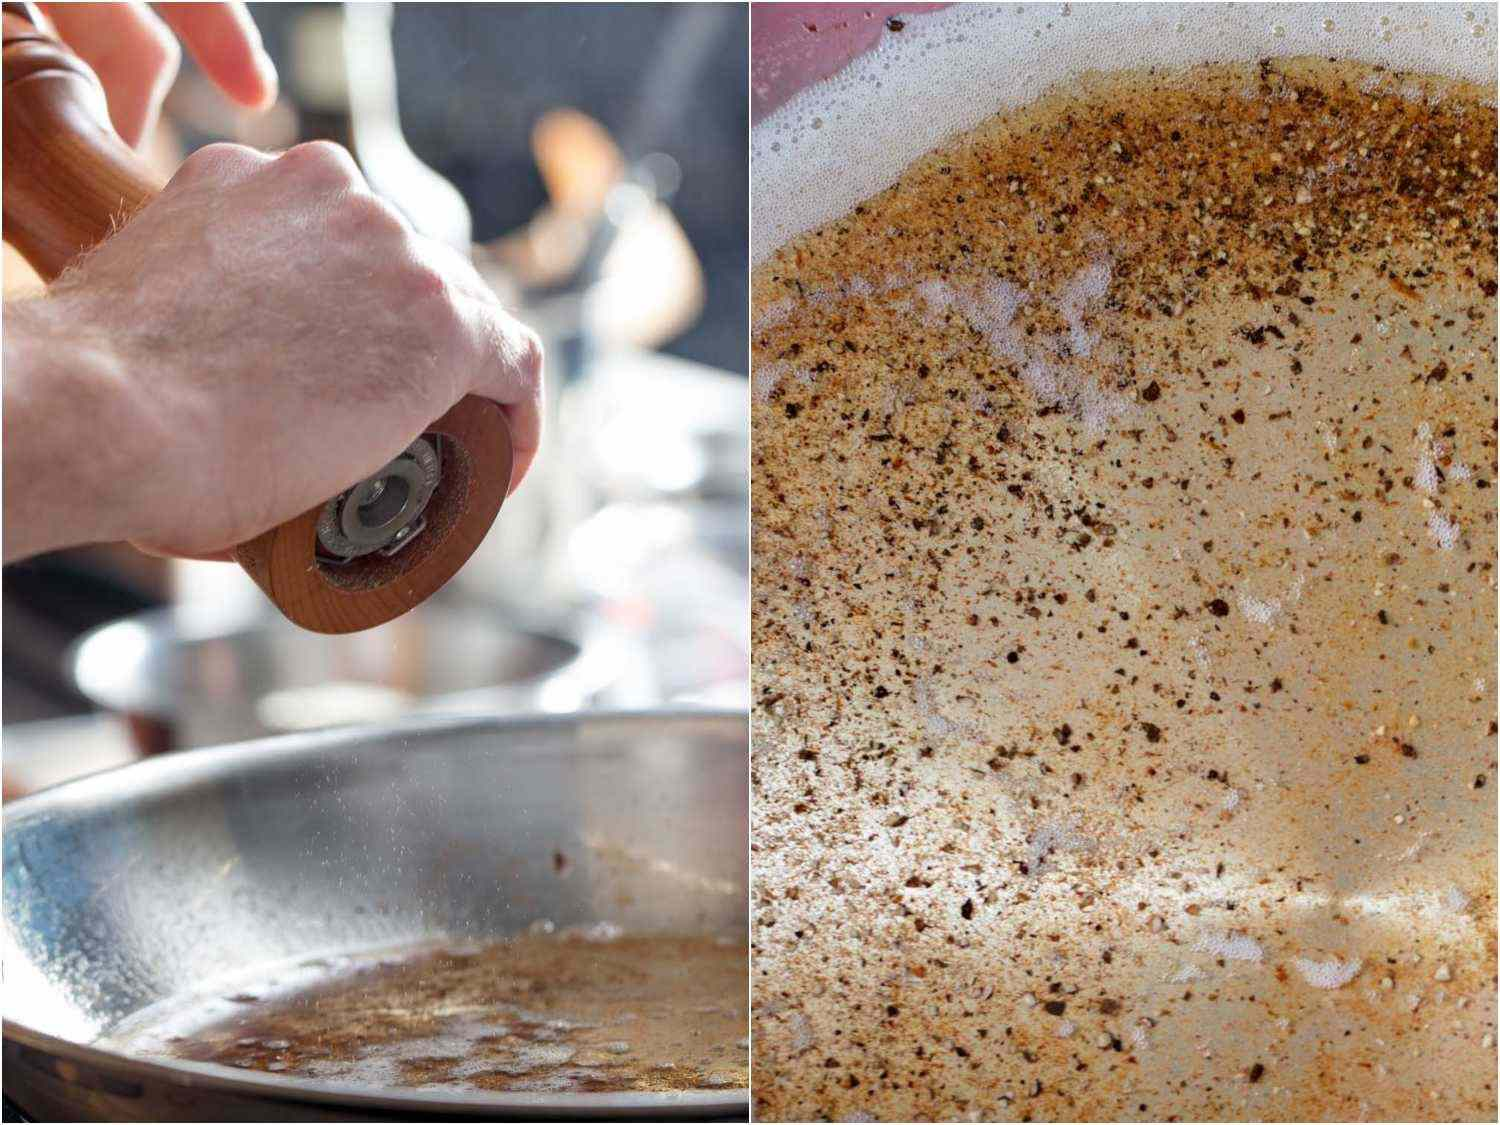 Grinding and blooming black pepper in rendered guanciale fat